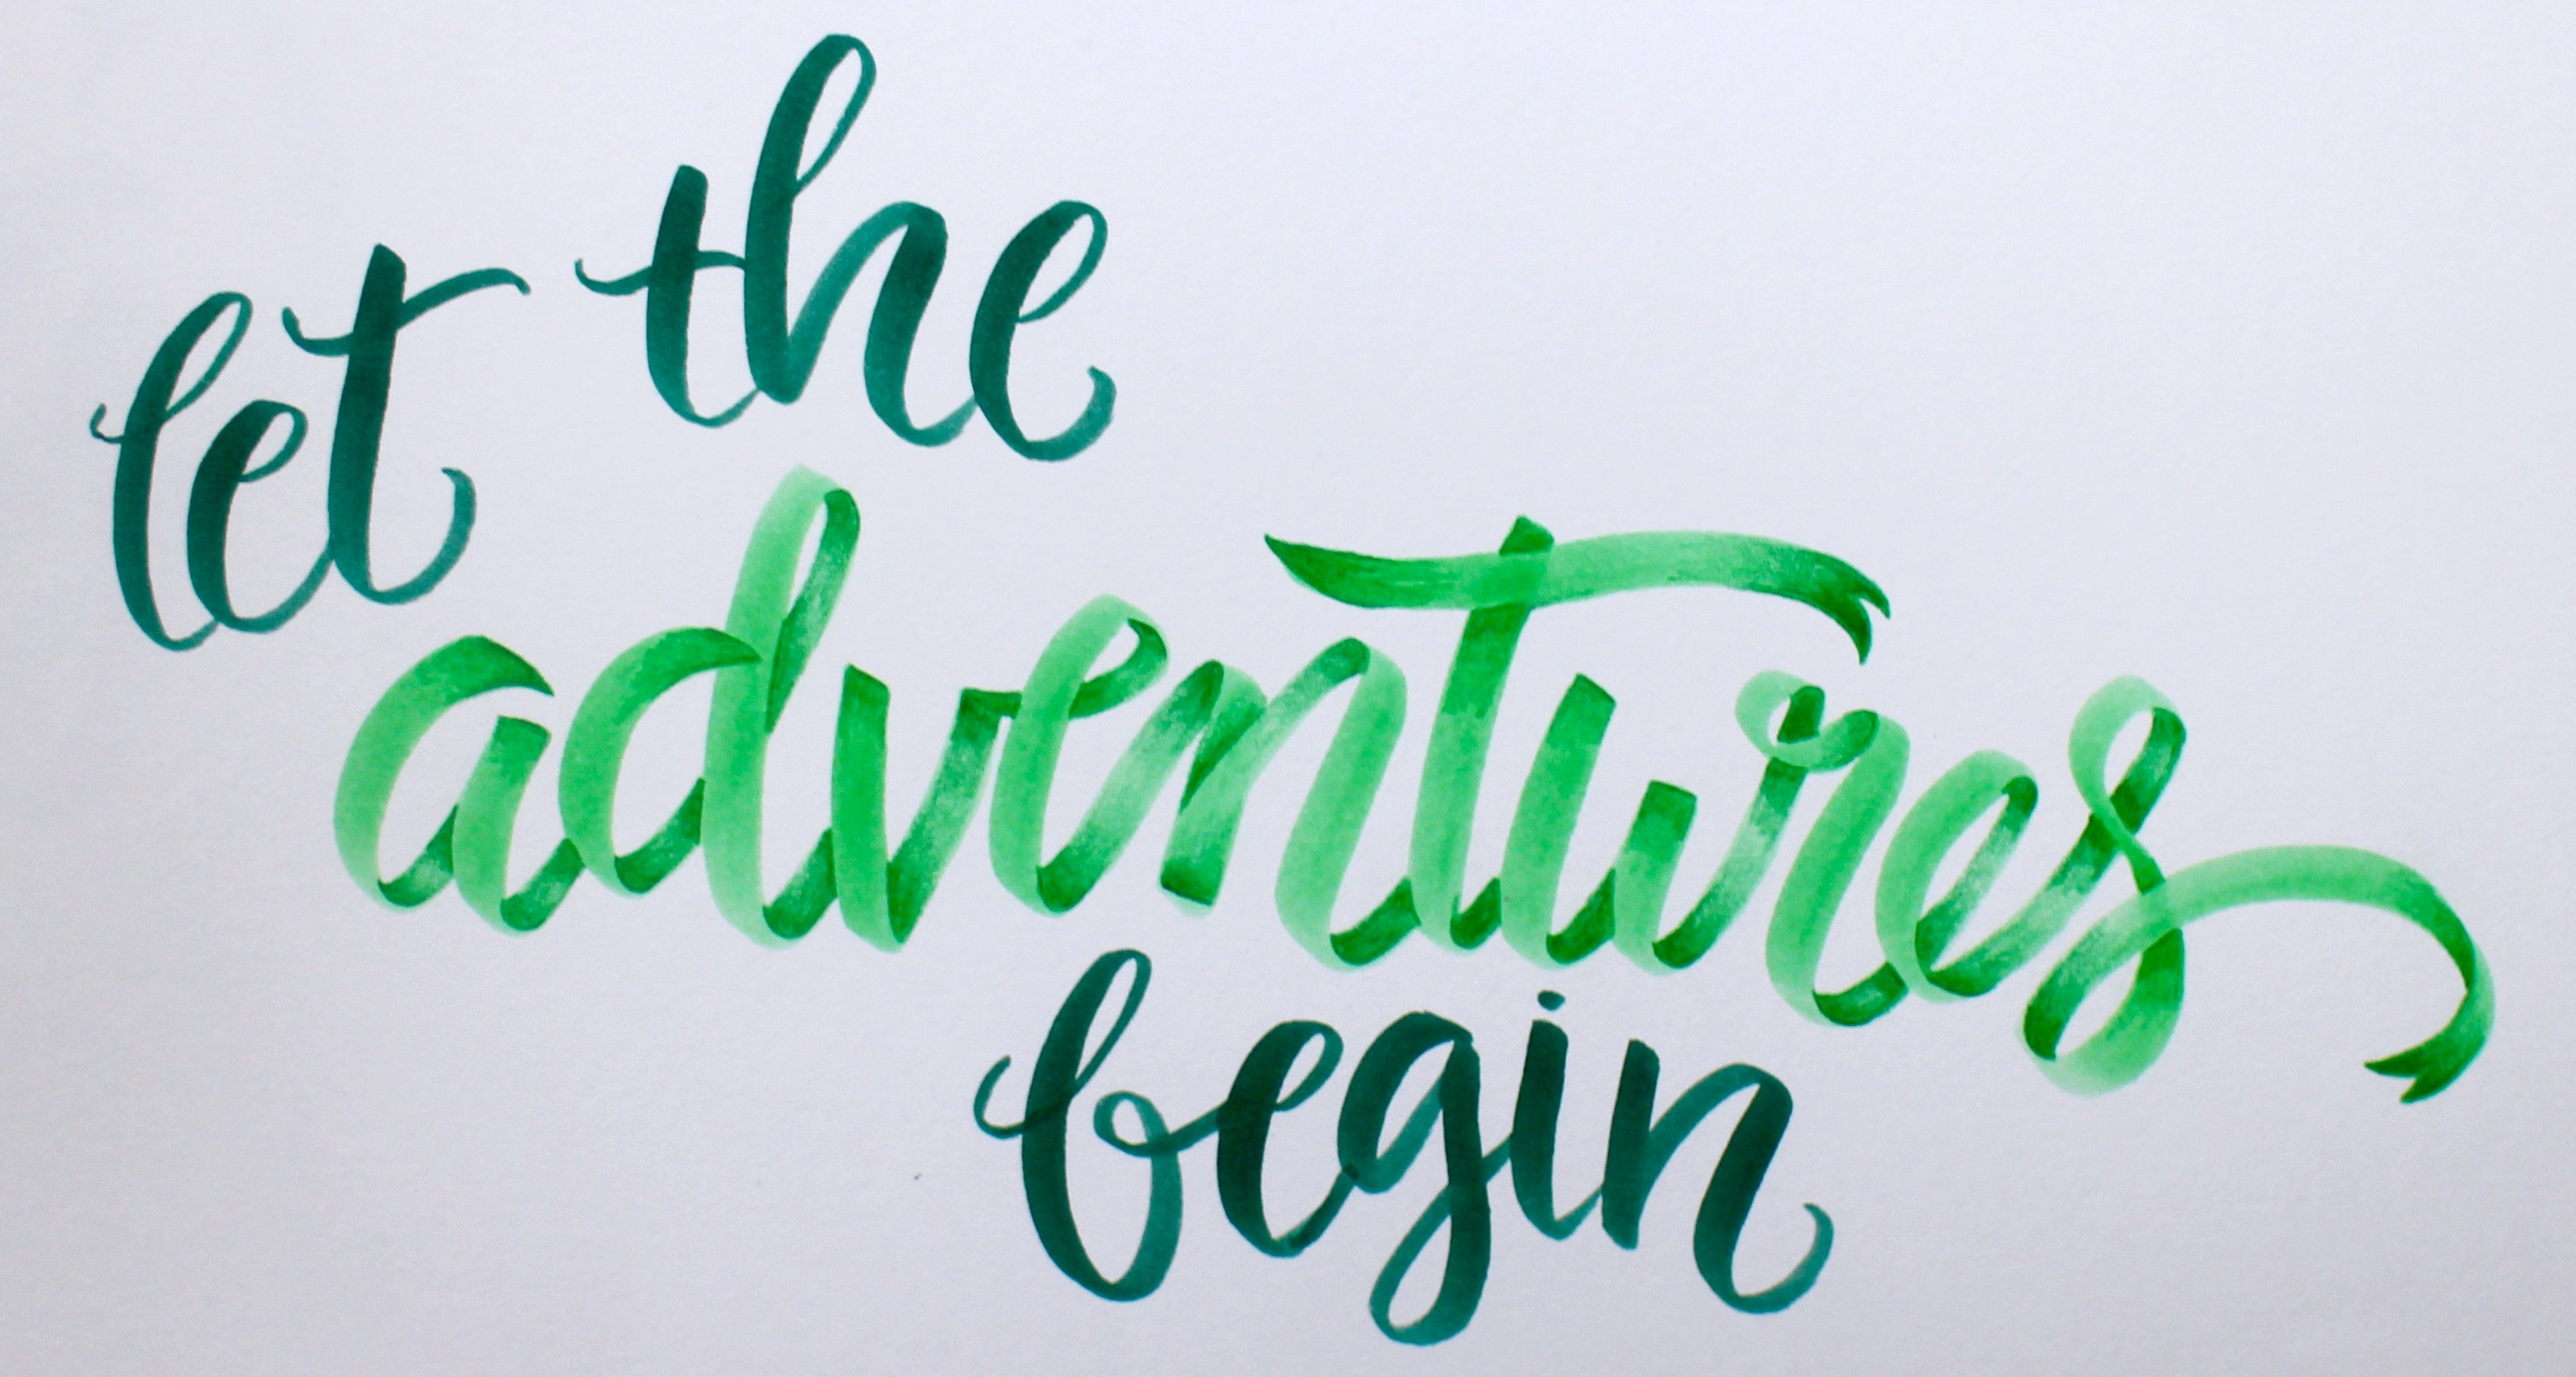 Ribbon lettering example 1